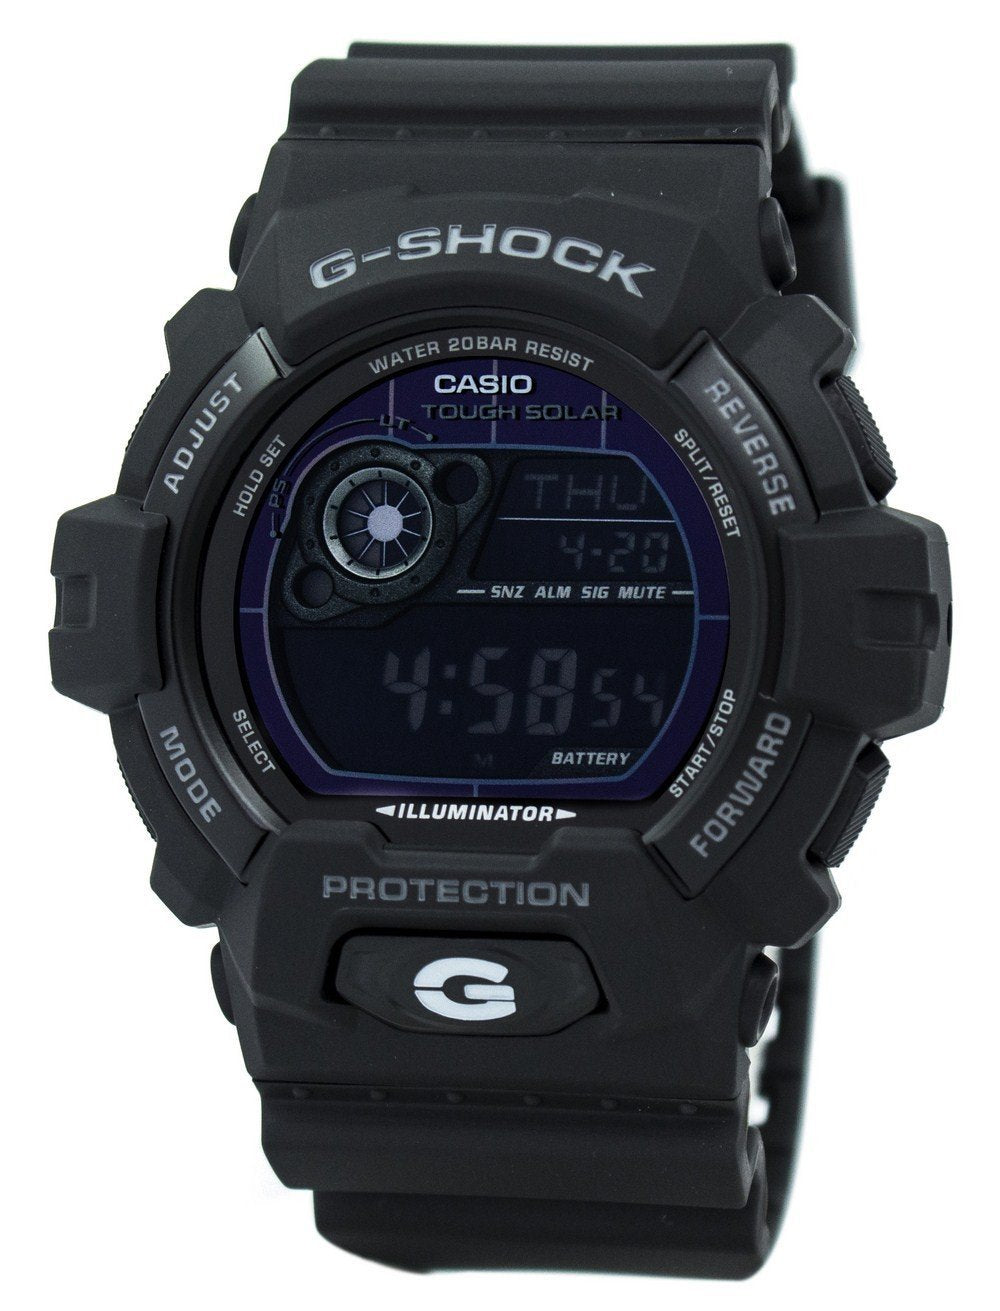 Casio G-Shock Tough Solar Series GR-8900A-1D GR8900A-1D Sports Men's Watch